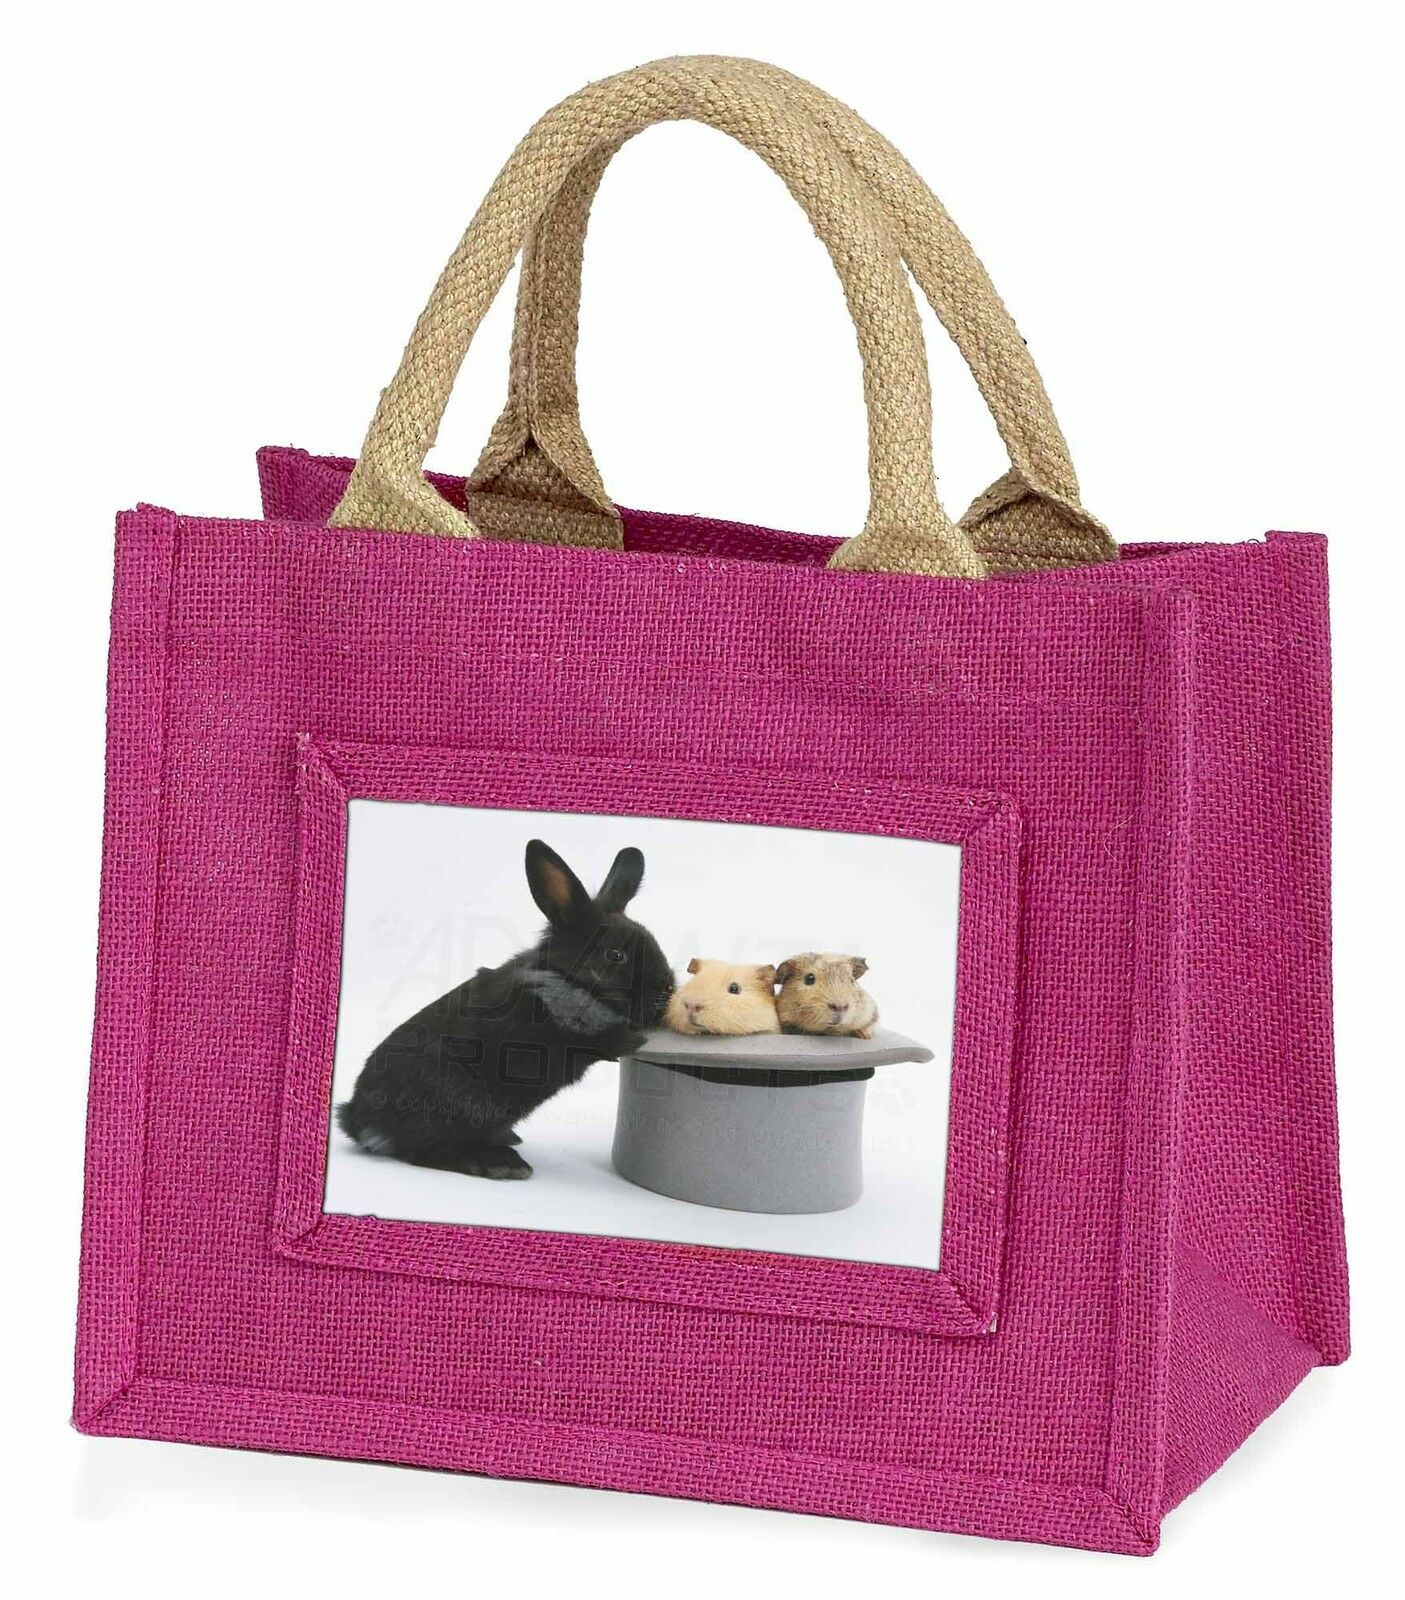 Rabbit and Guinea Pigs in Top Hat Little Girls Small Pink Shopping Bag, AR-10BMP